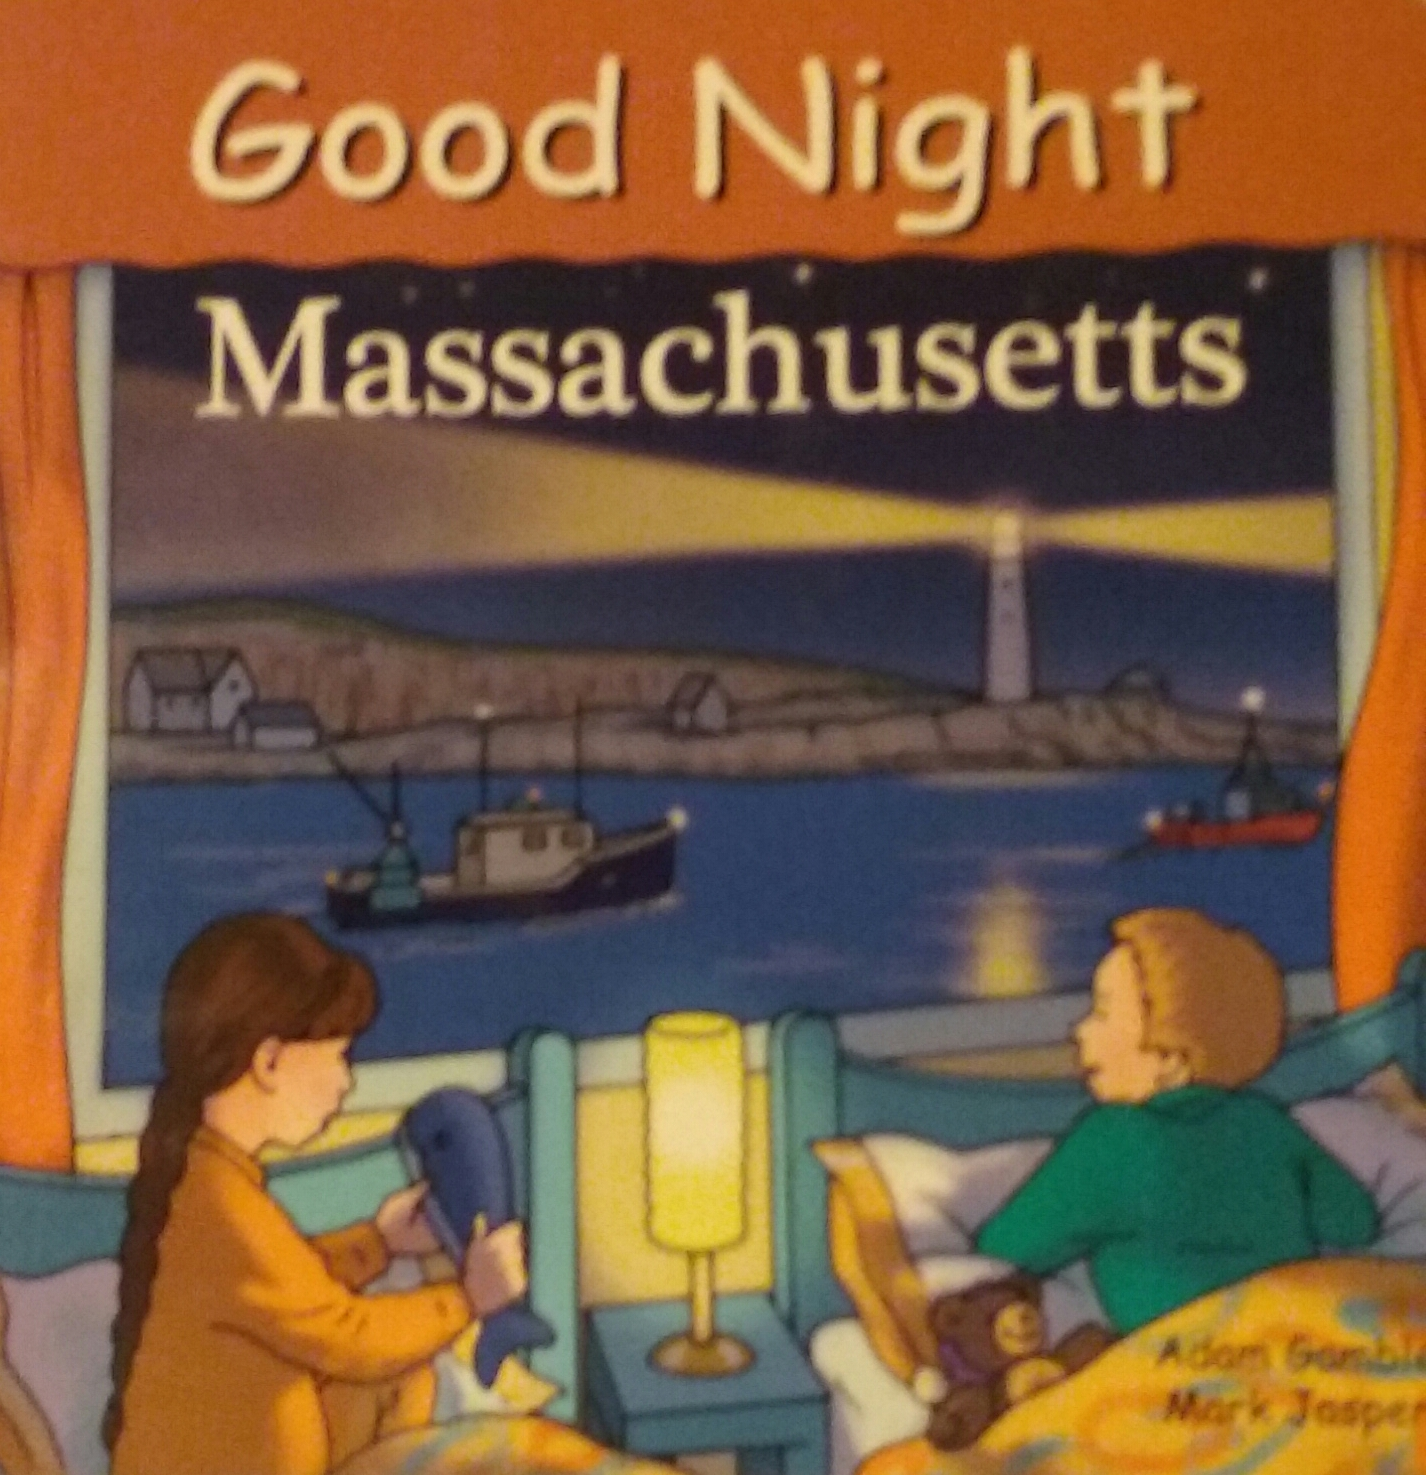 Good Night Massachusetts